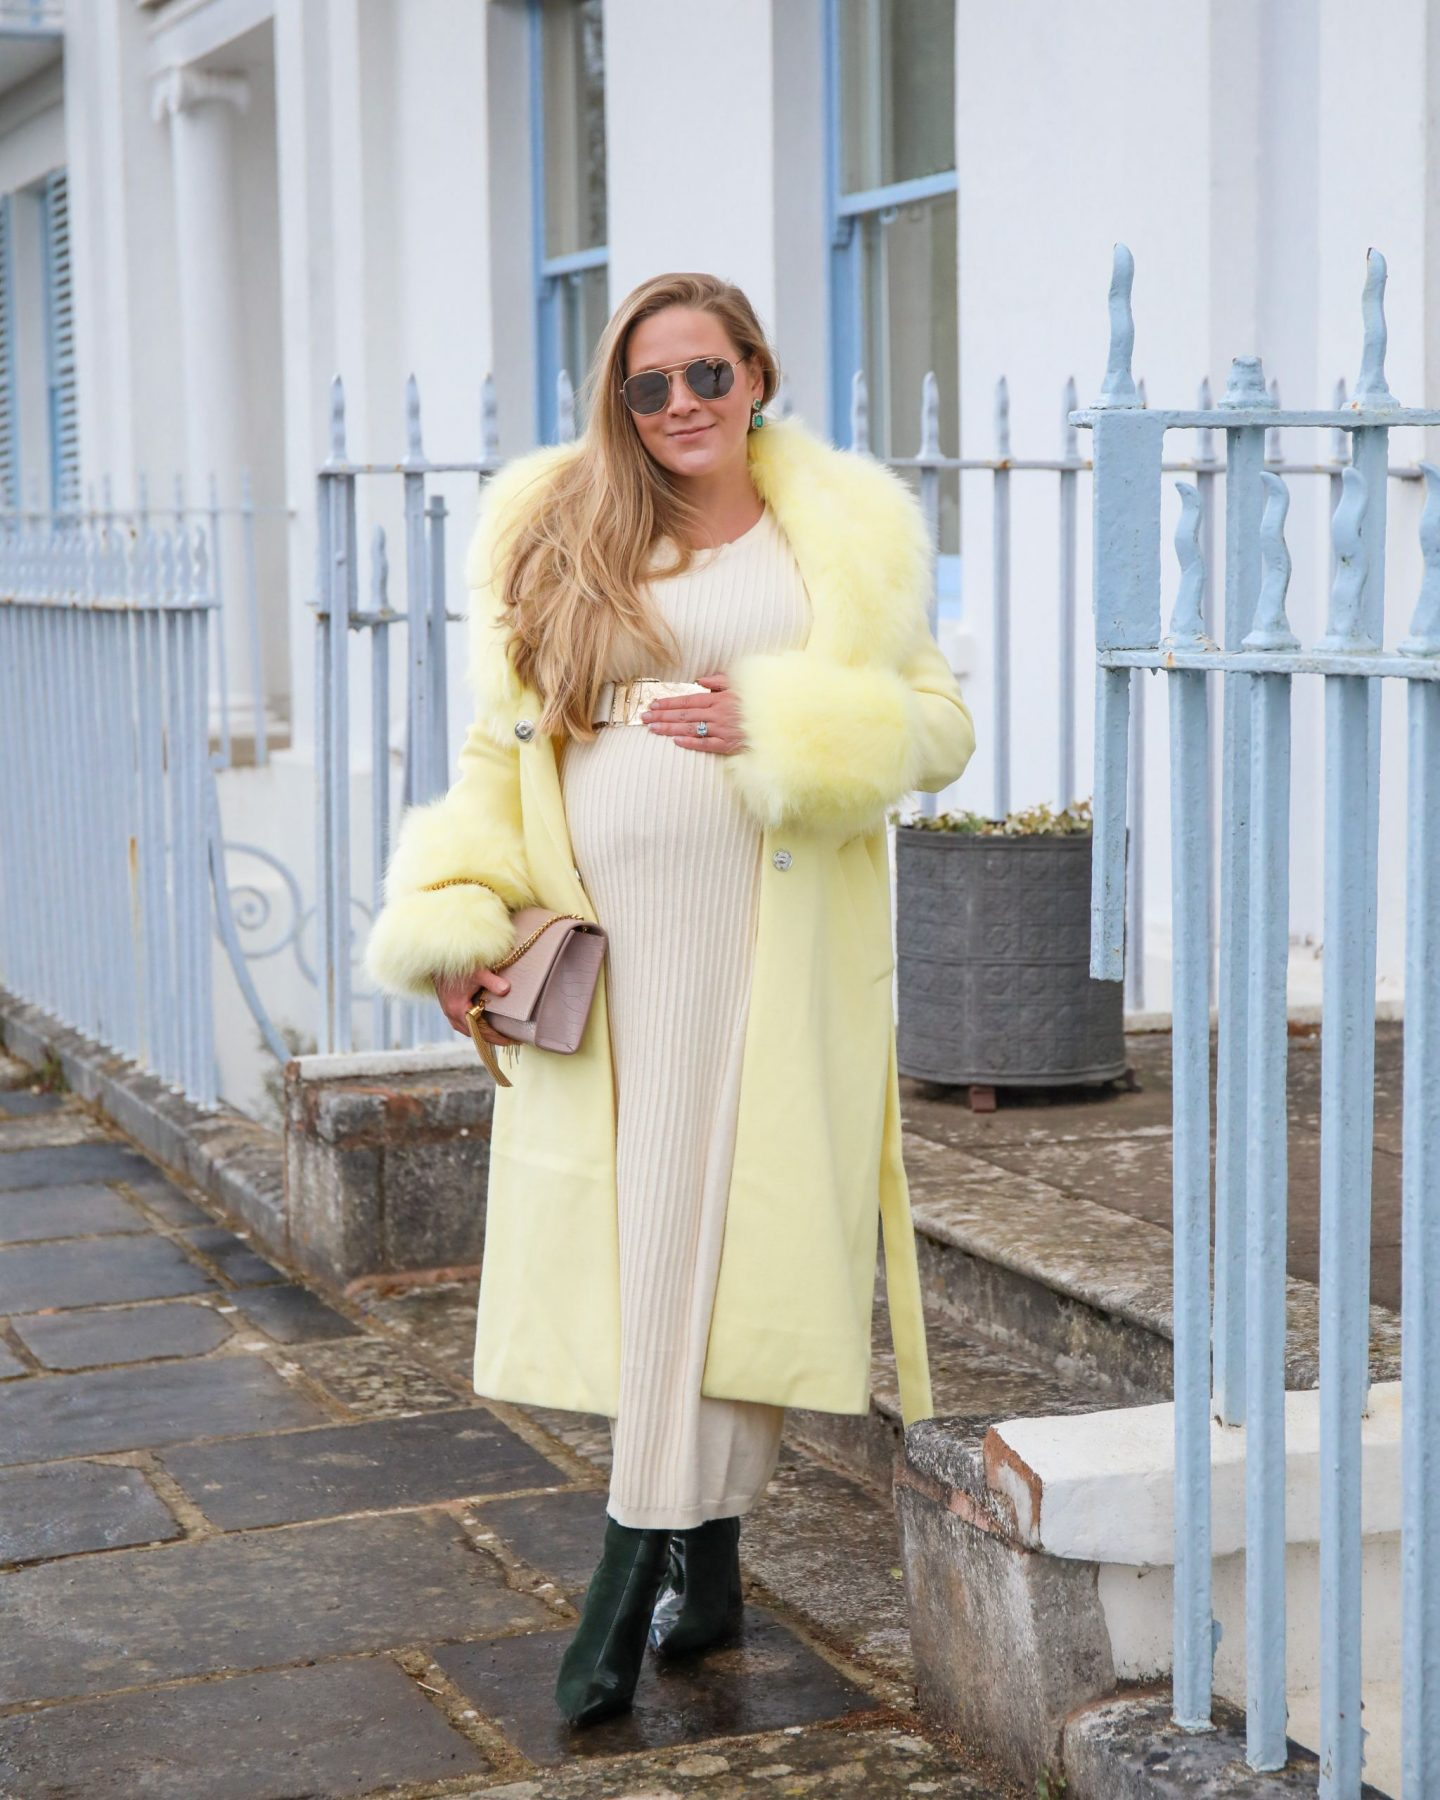 Yellow knit dress and yellow fur trimmed coat, Katie KALANCHOE